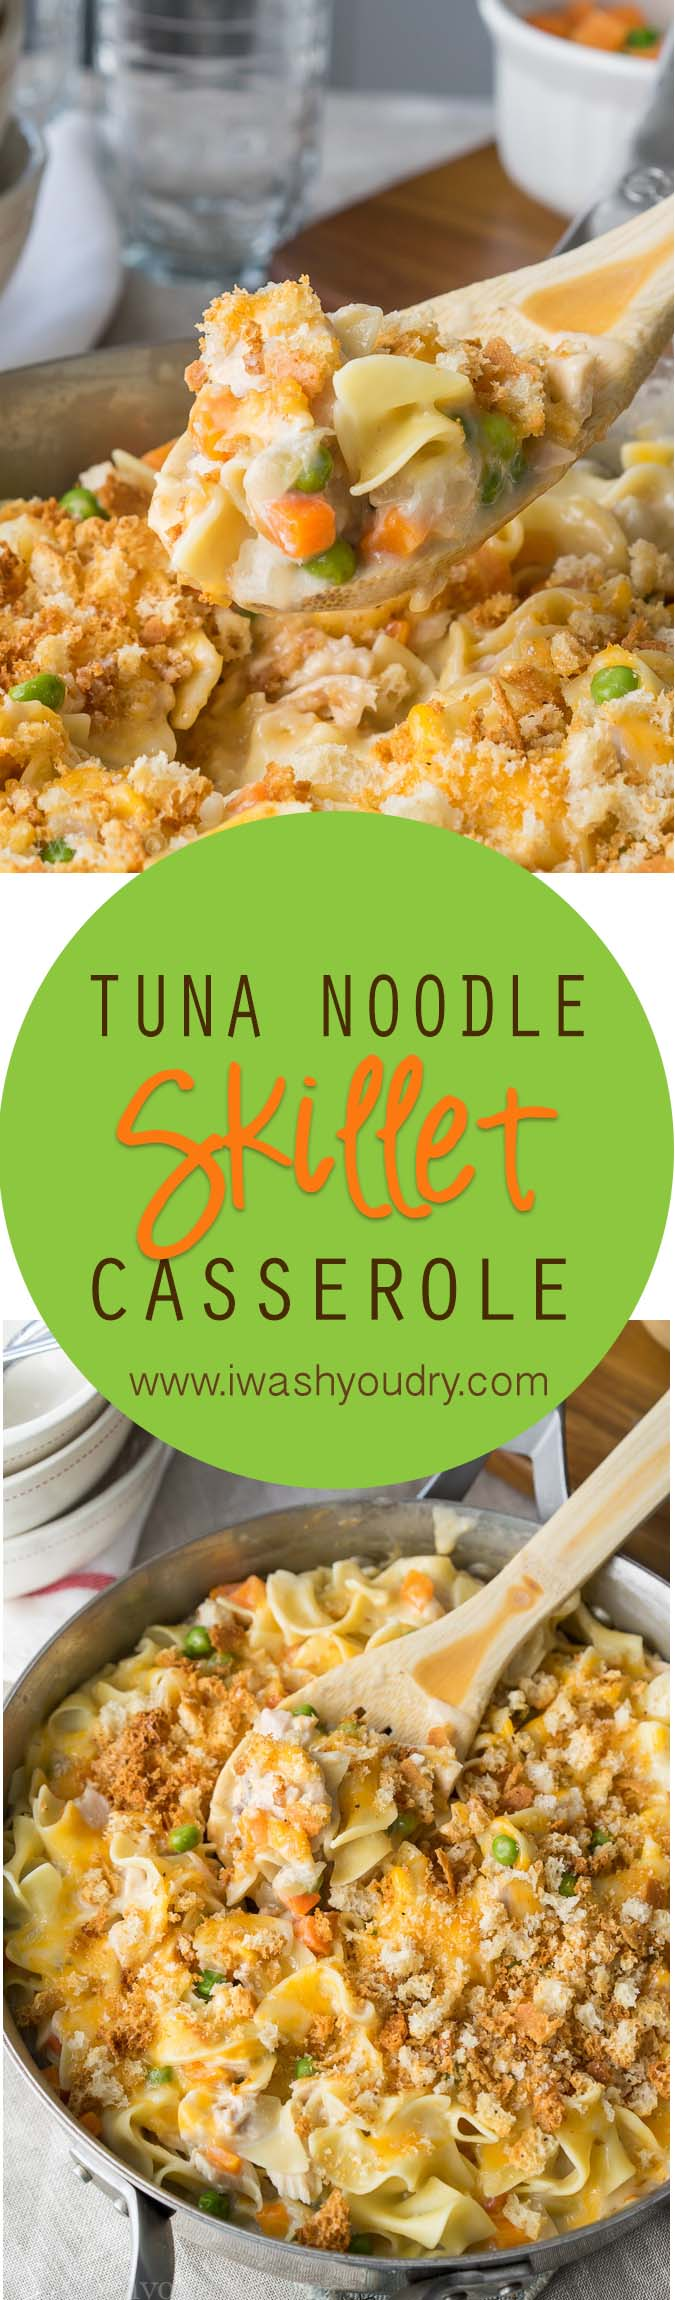 Mom's classic tuna noodle casserole got better! Just a frying pan!